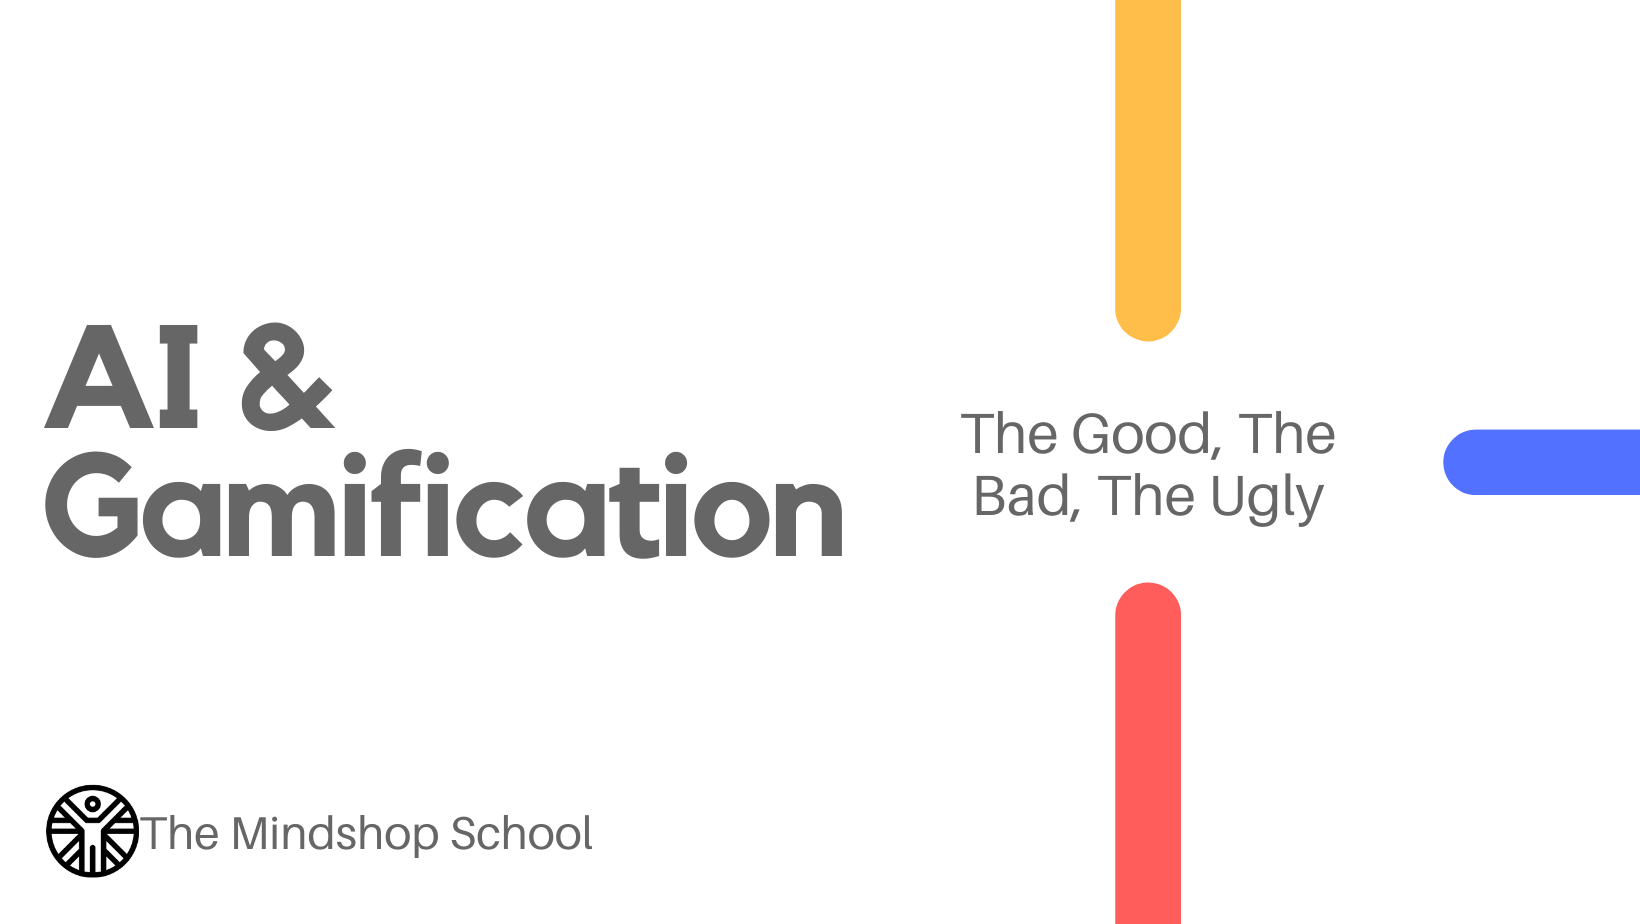 [AUTOWEBINAR] AI & Gamification: The Good, The Bad, The Ugly